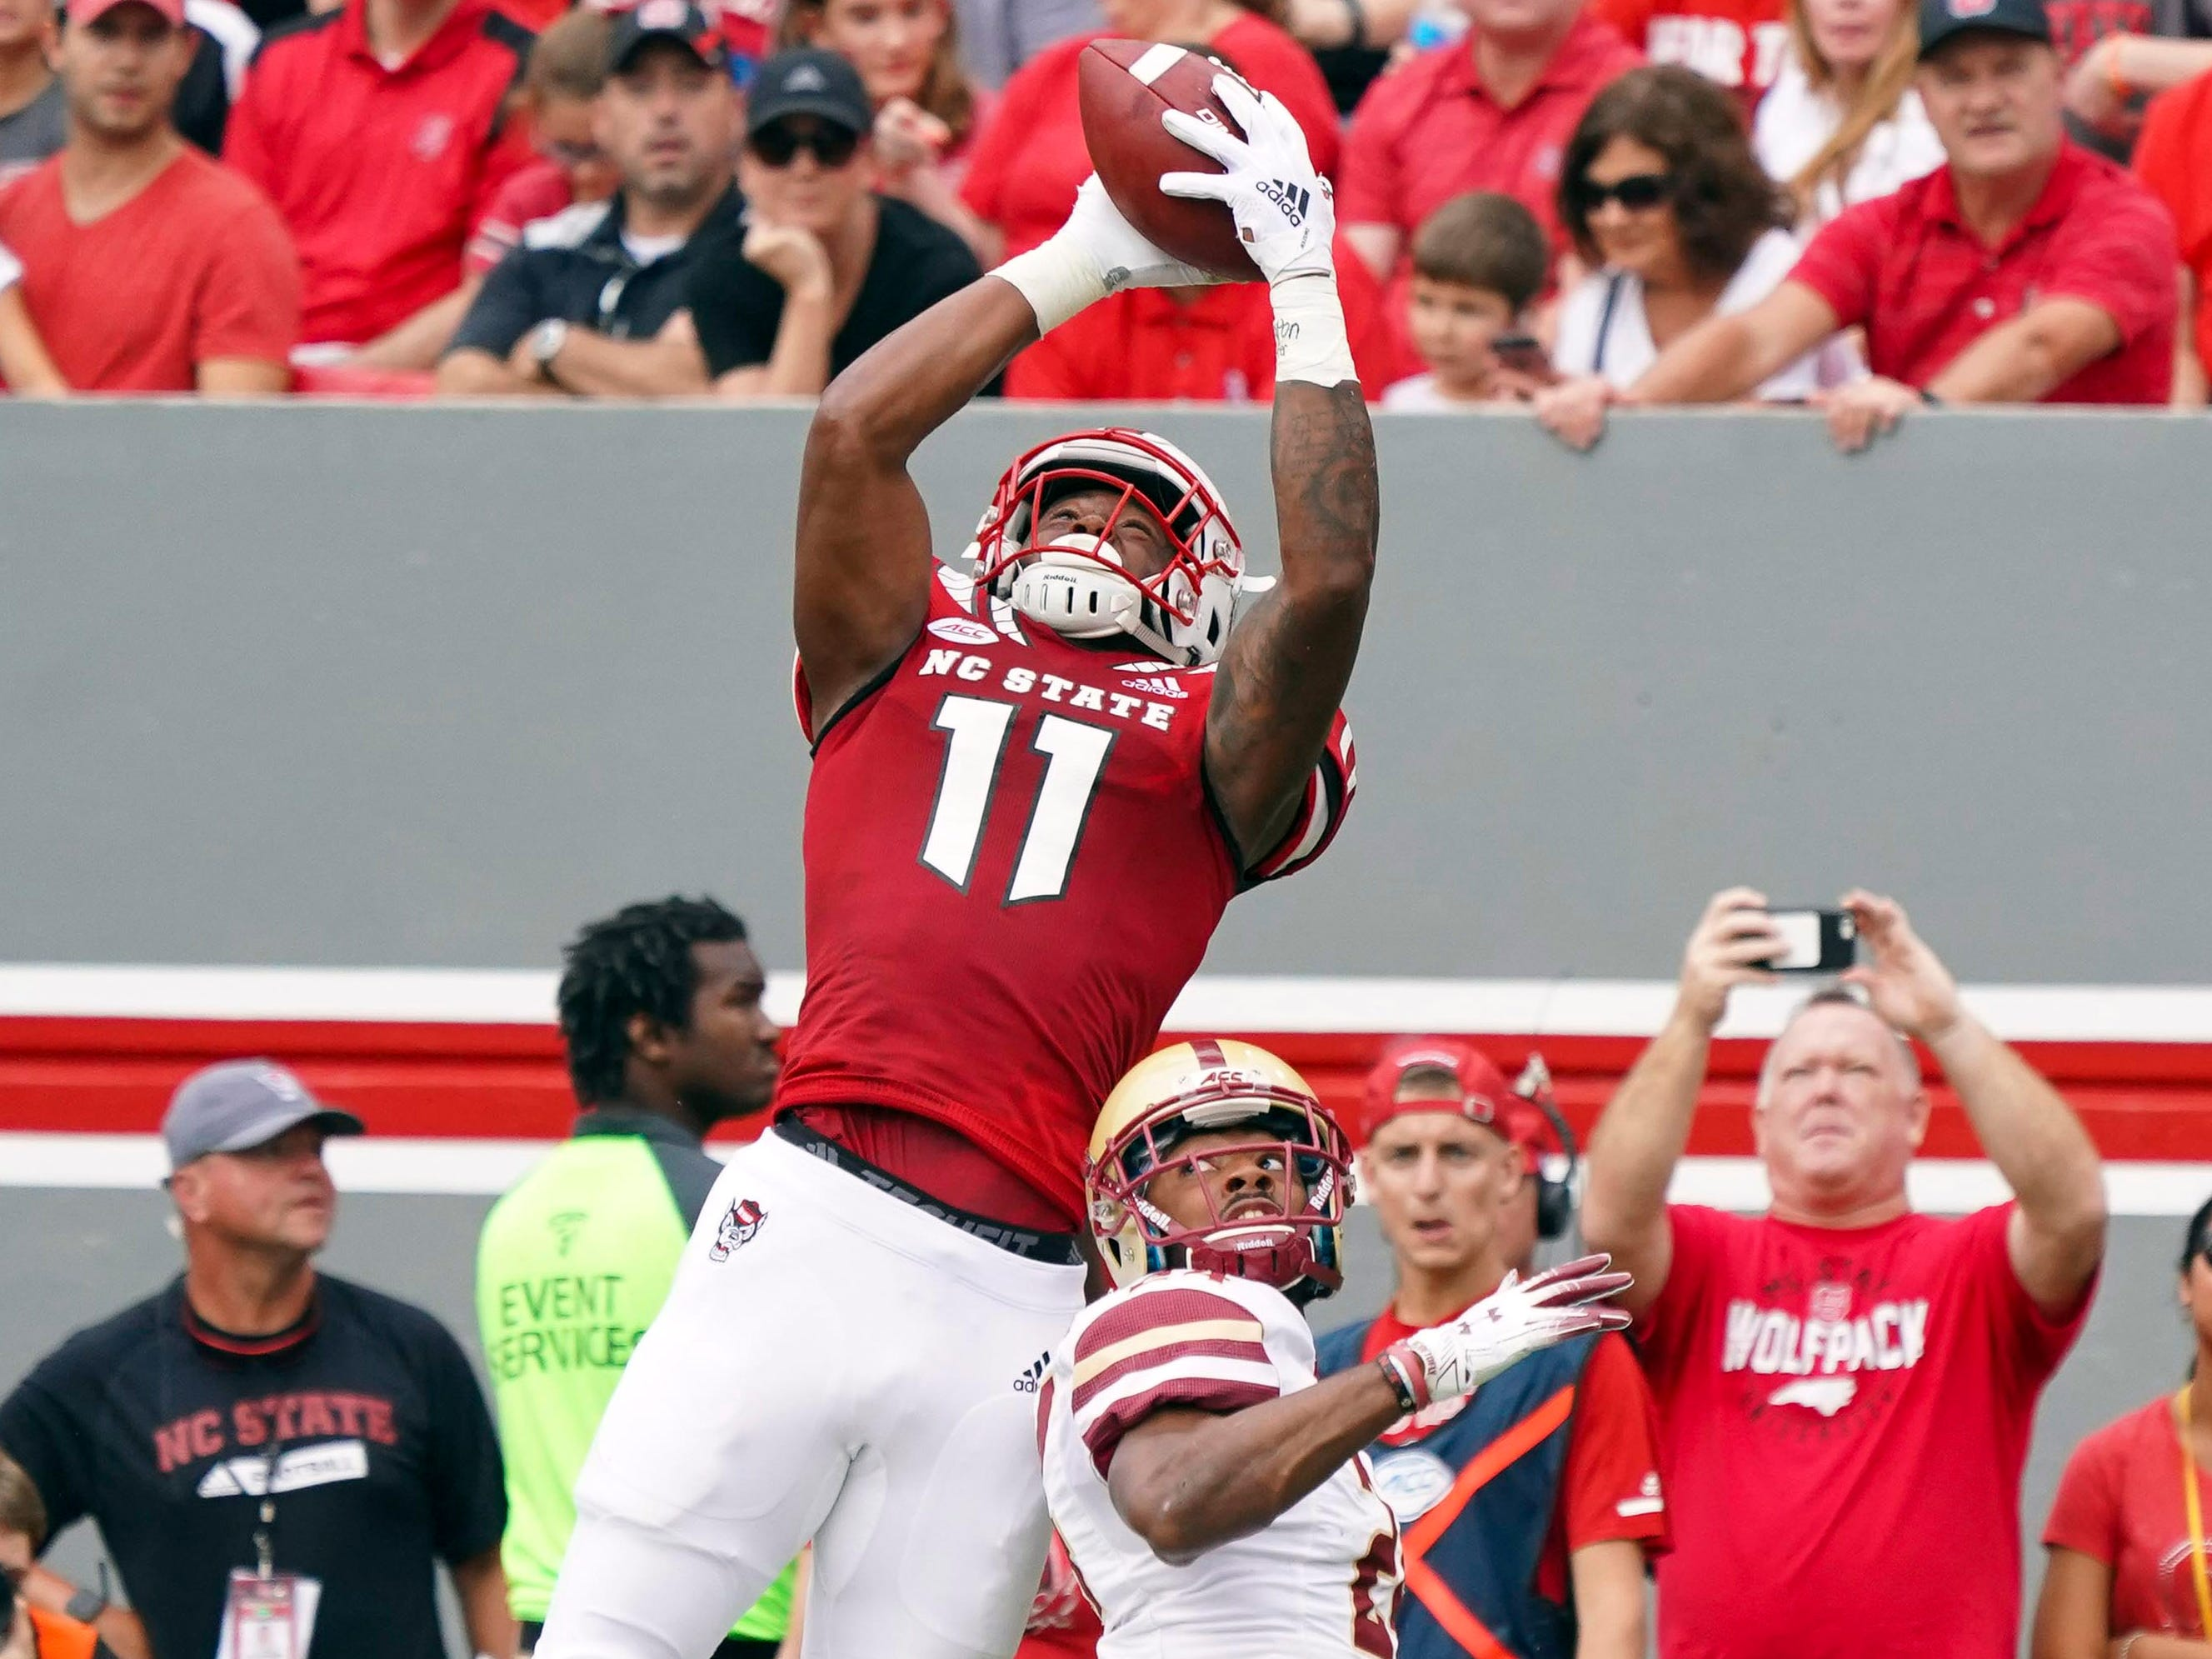 North Carolina State Wolfpack wide receiver Jakobi Meyers makes a catch against Boston College Eagles defensive back Taj-Amir Torres during the first half at Carter-Finley Stadium.